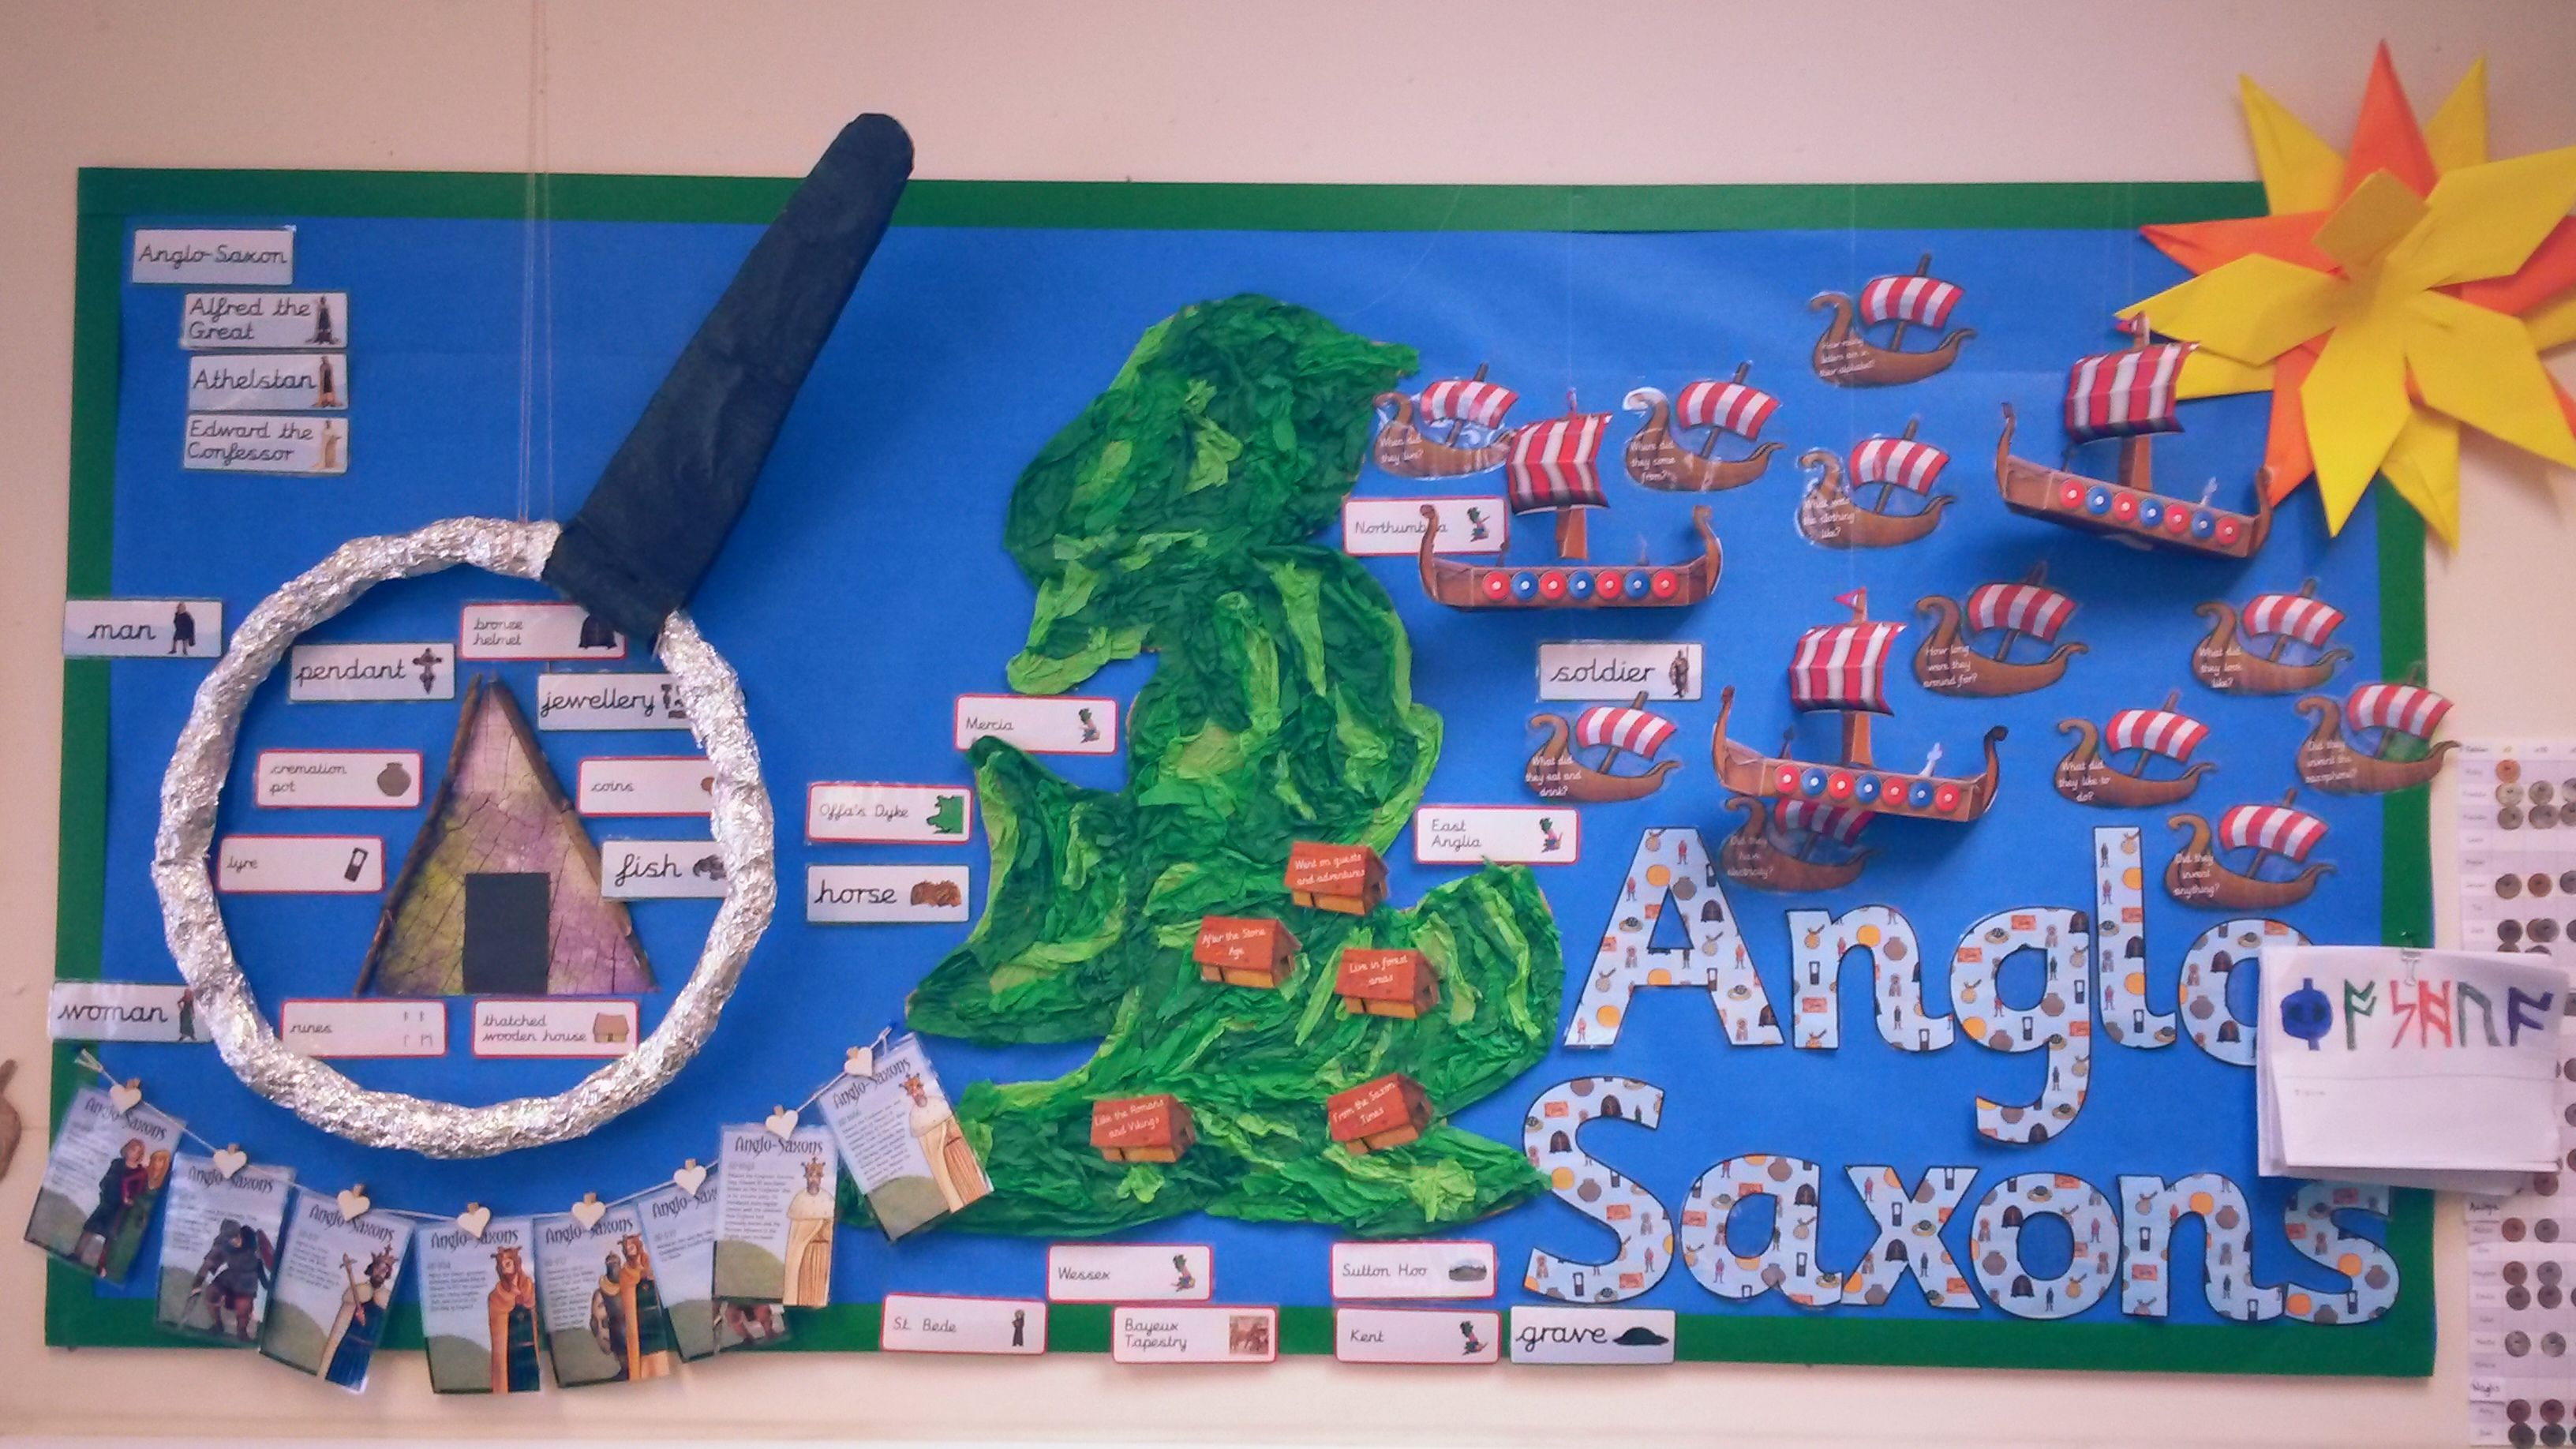 Anglo Saxon Topic Display Includes Events Cards On The